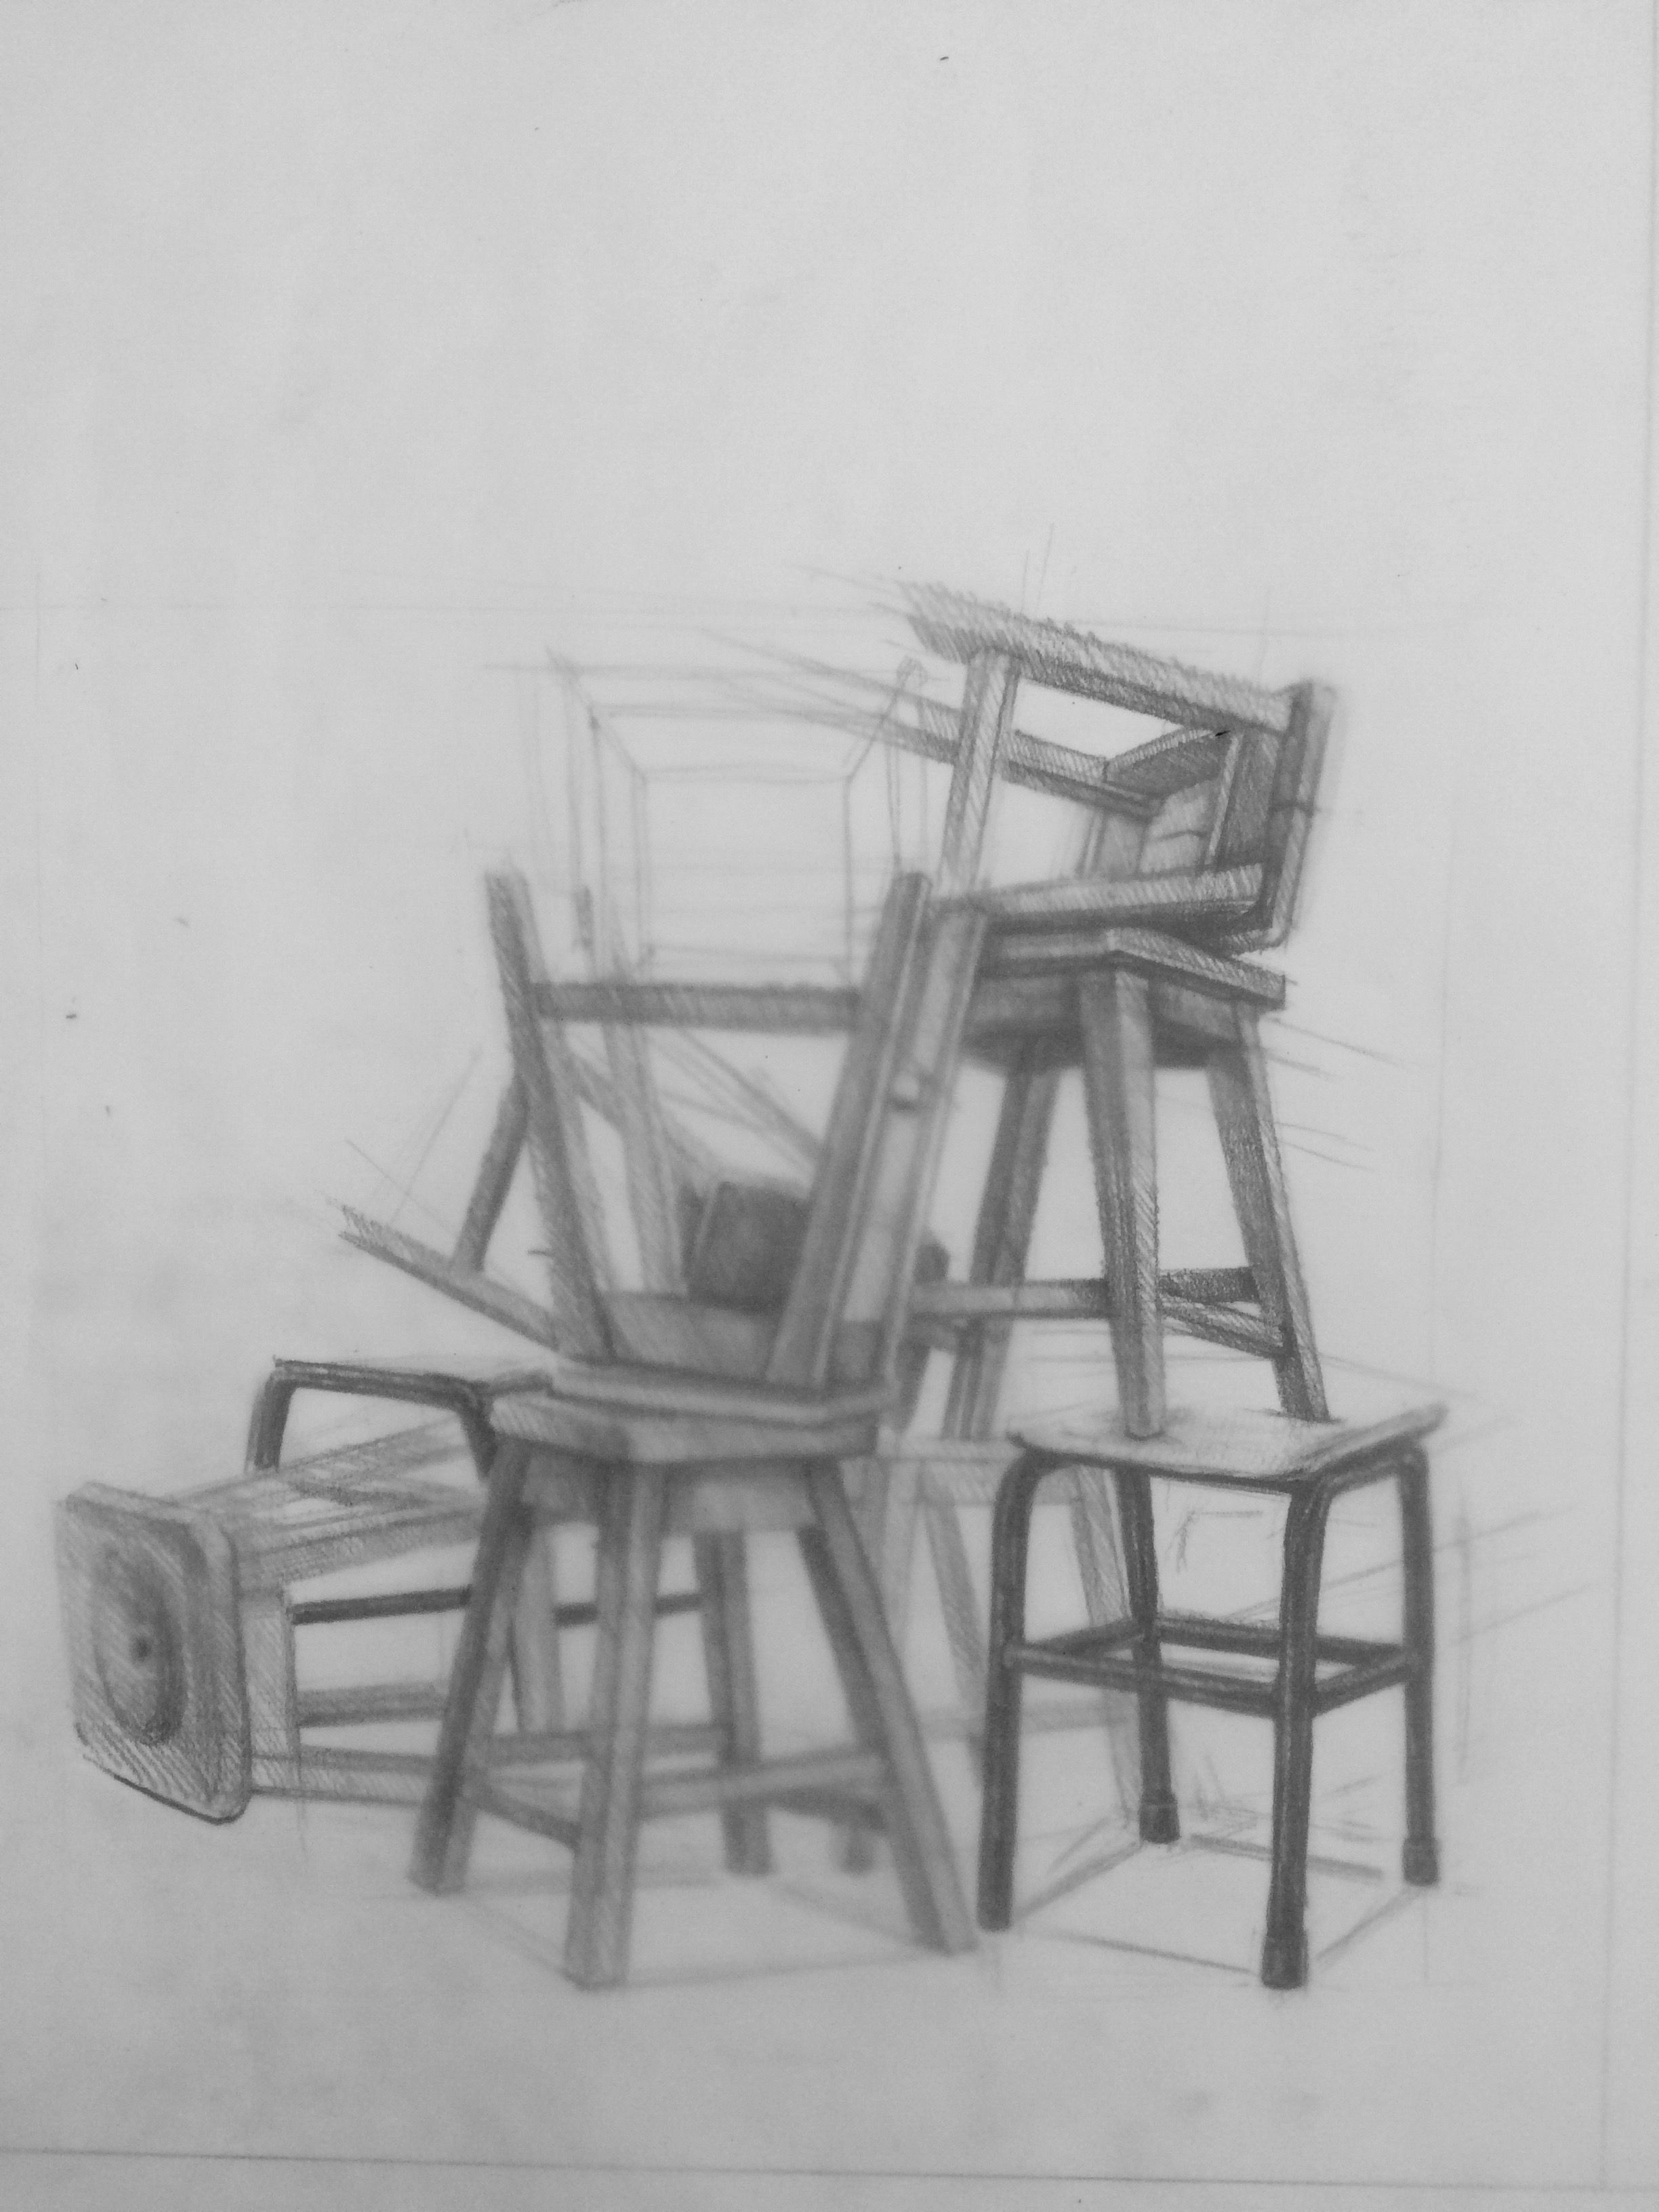 how to draw a 3d chair 34 chair drawing pencil ideas drawings chair drawing how draw 3d to chair a